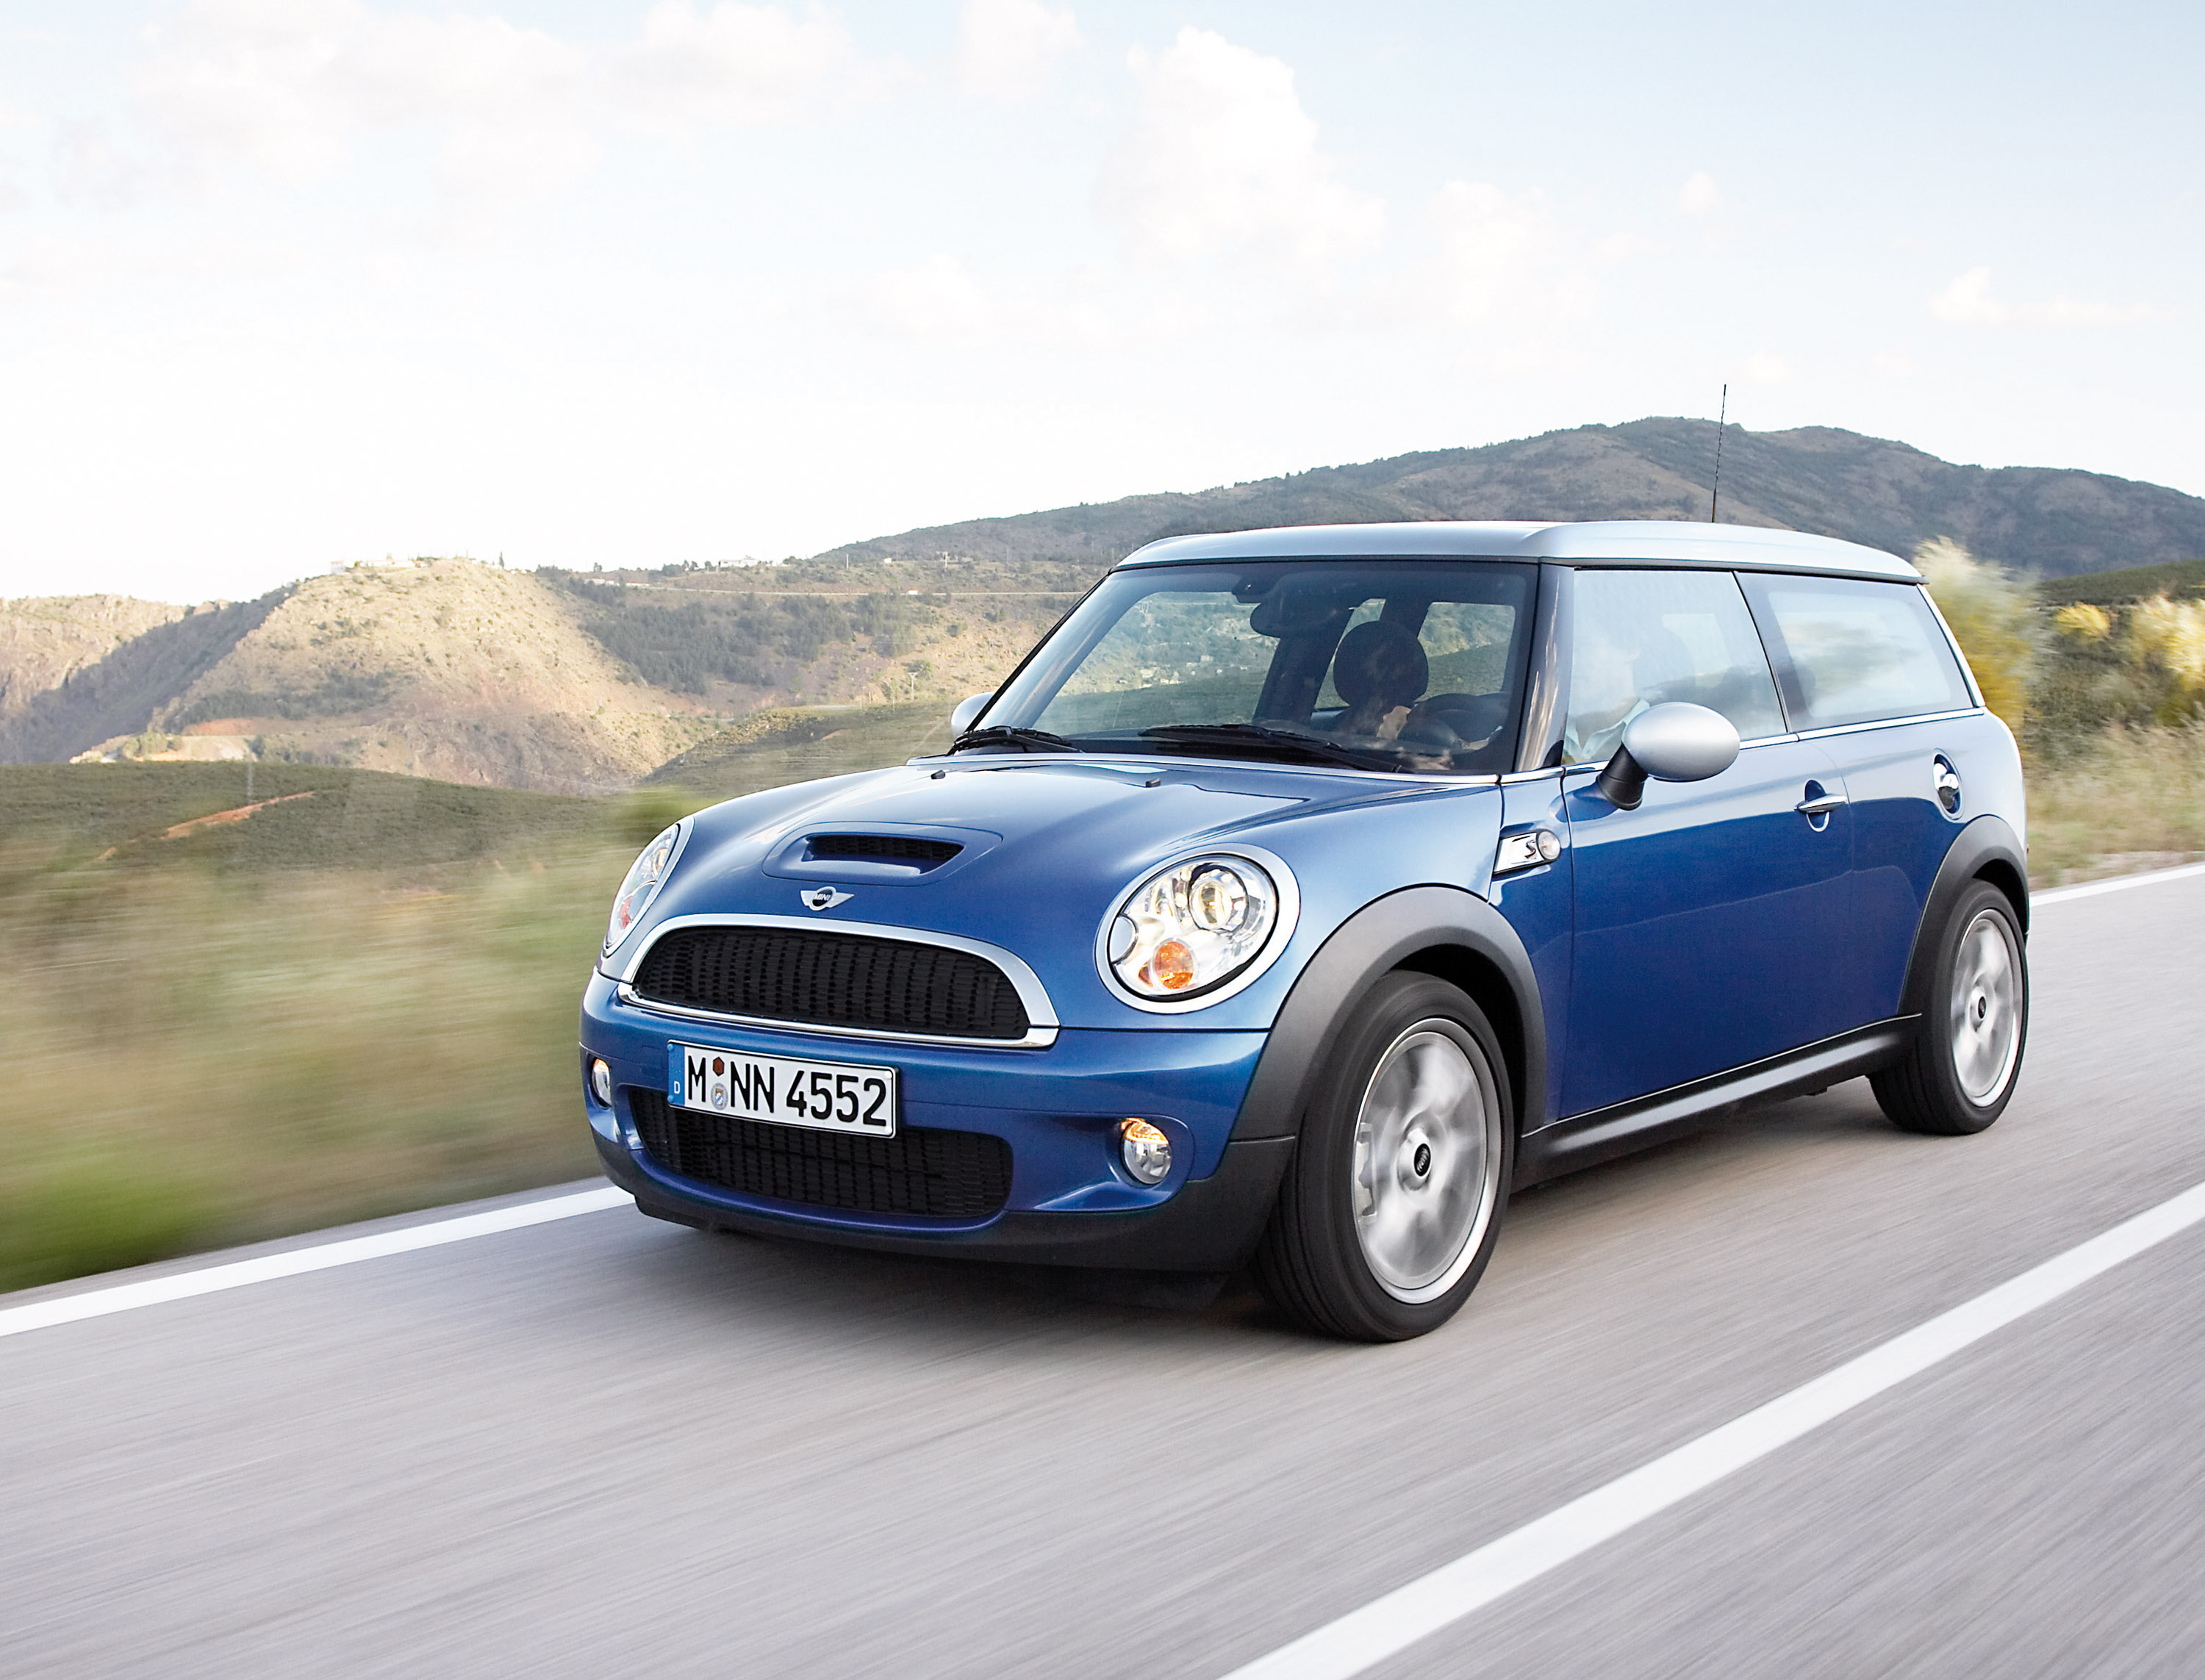 mini cooper s r56 ecu remap by superchips uk. Black Bedroom Furniture Sets. Home Design Ideas